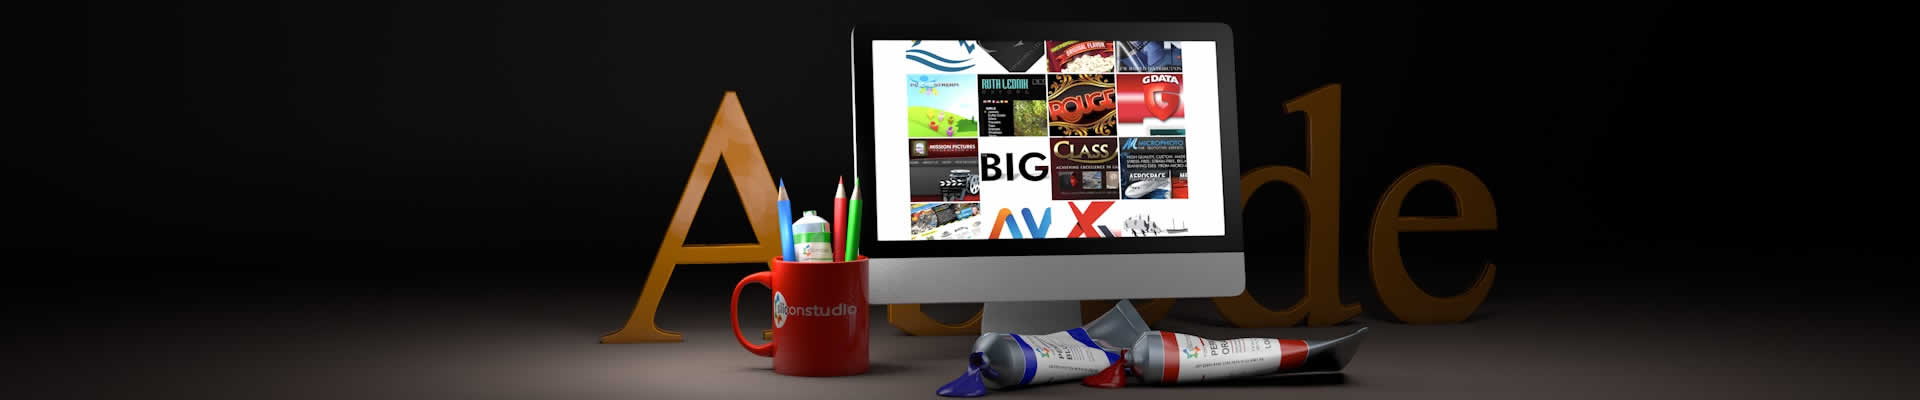 SiliconStudio for Graphic Design